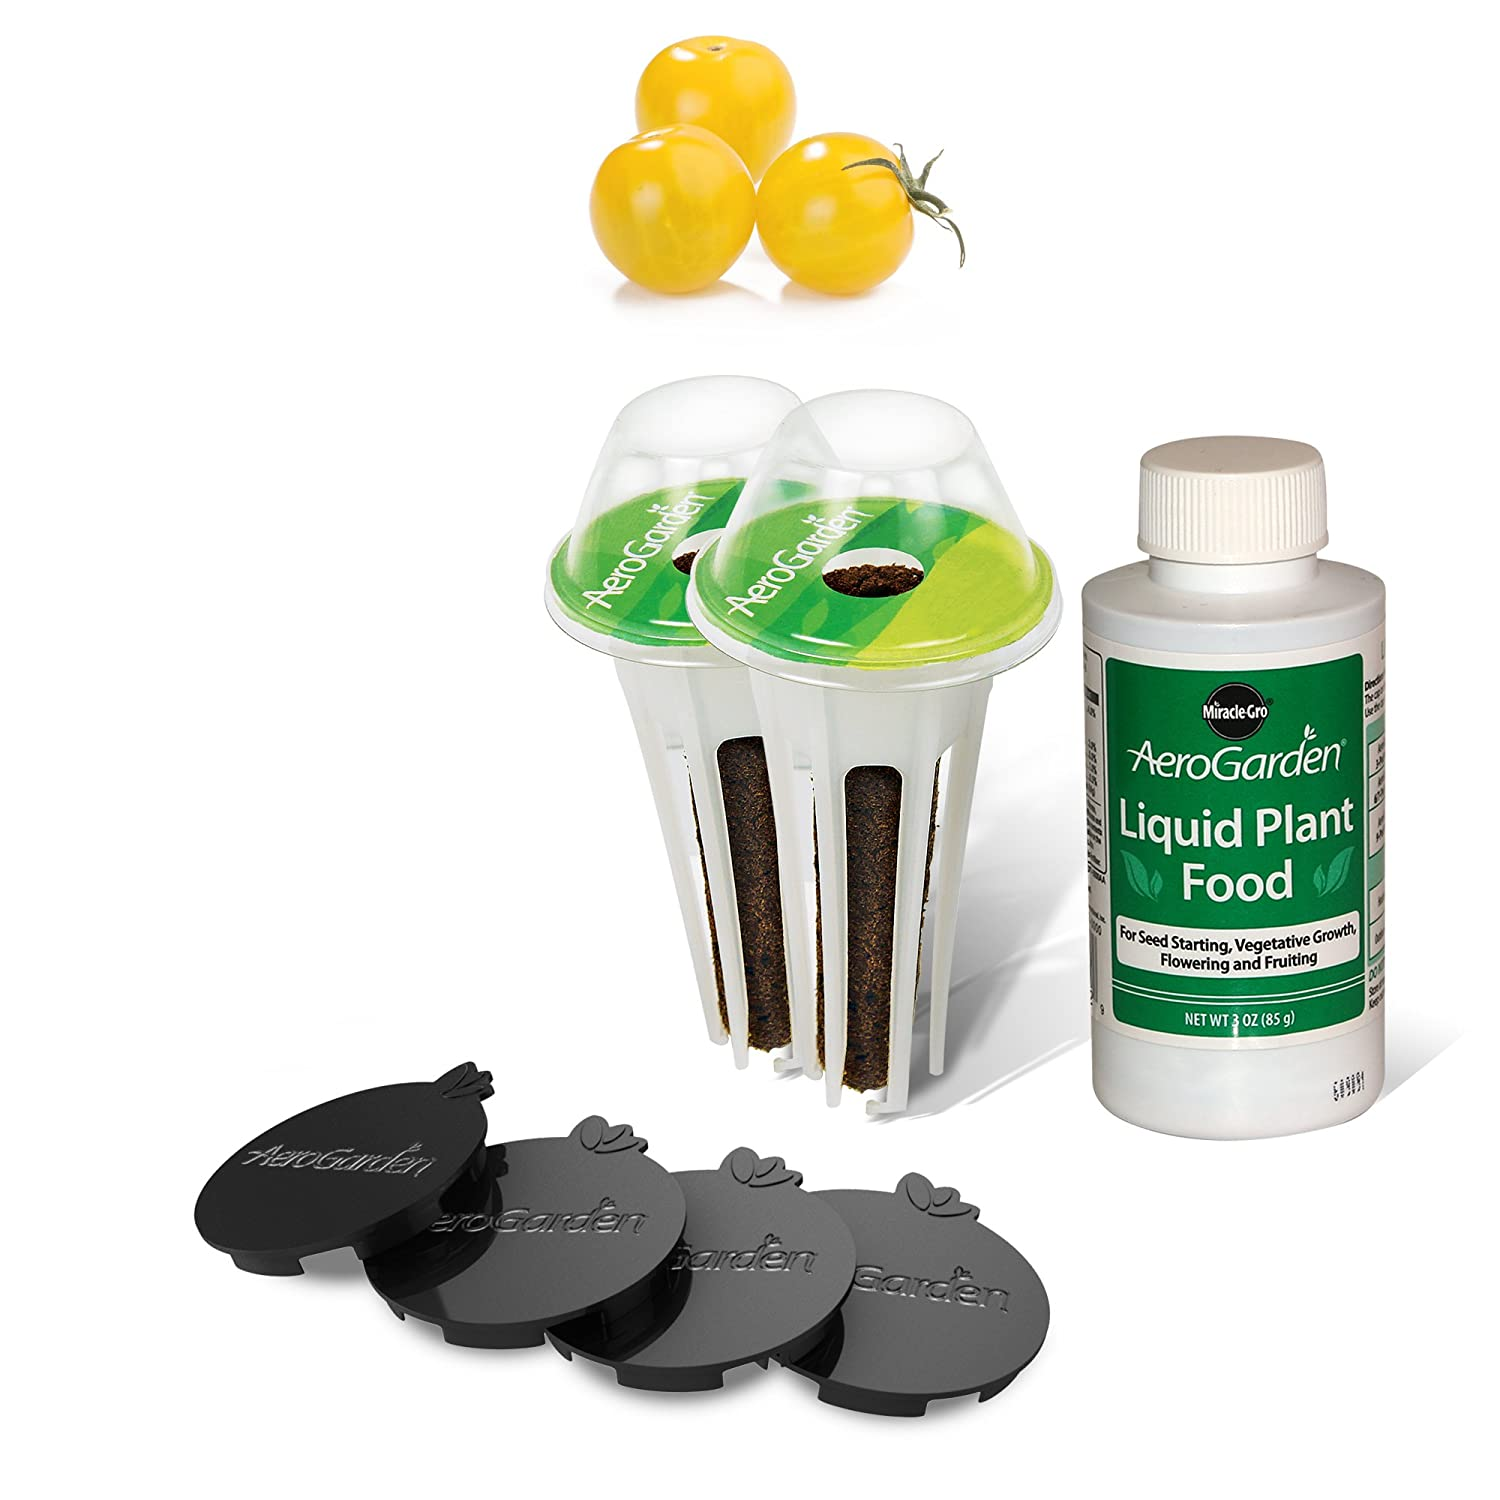 AeroGarden Golden Harvest Cherry Tomato Kit for Harvest & Classic 6 Models 806516-0208